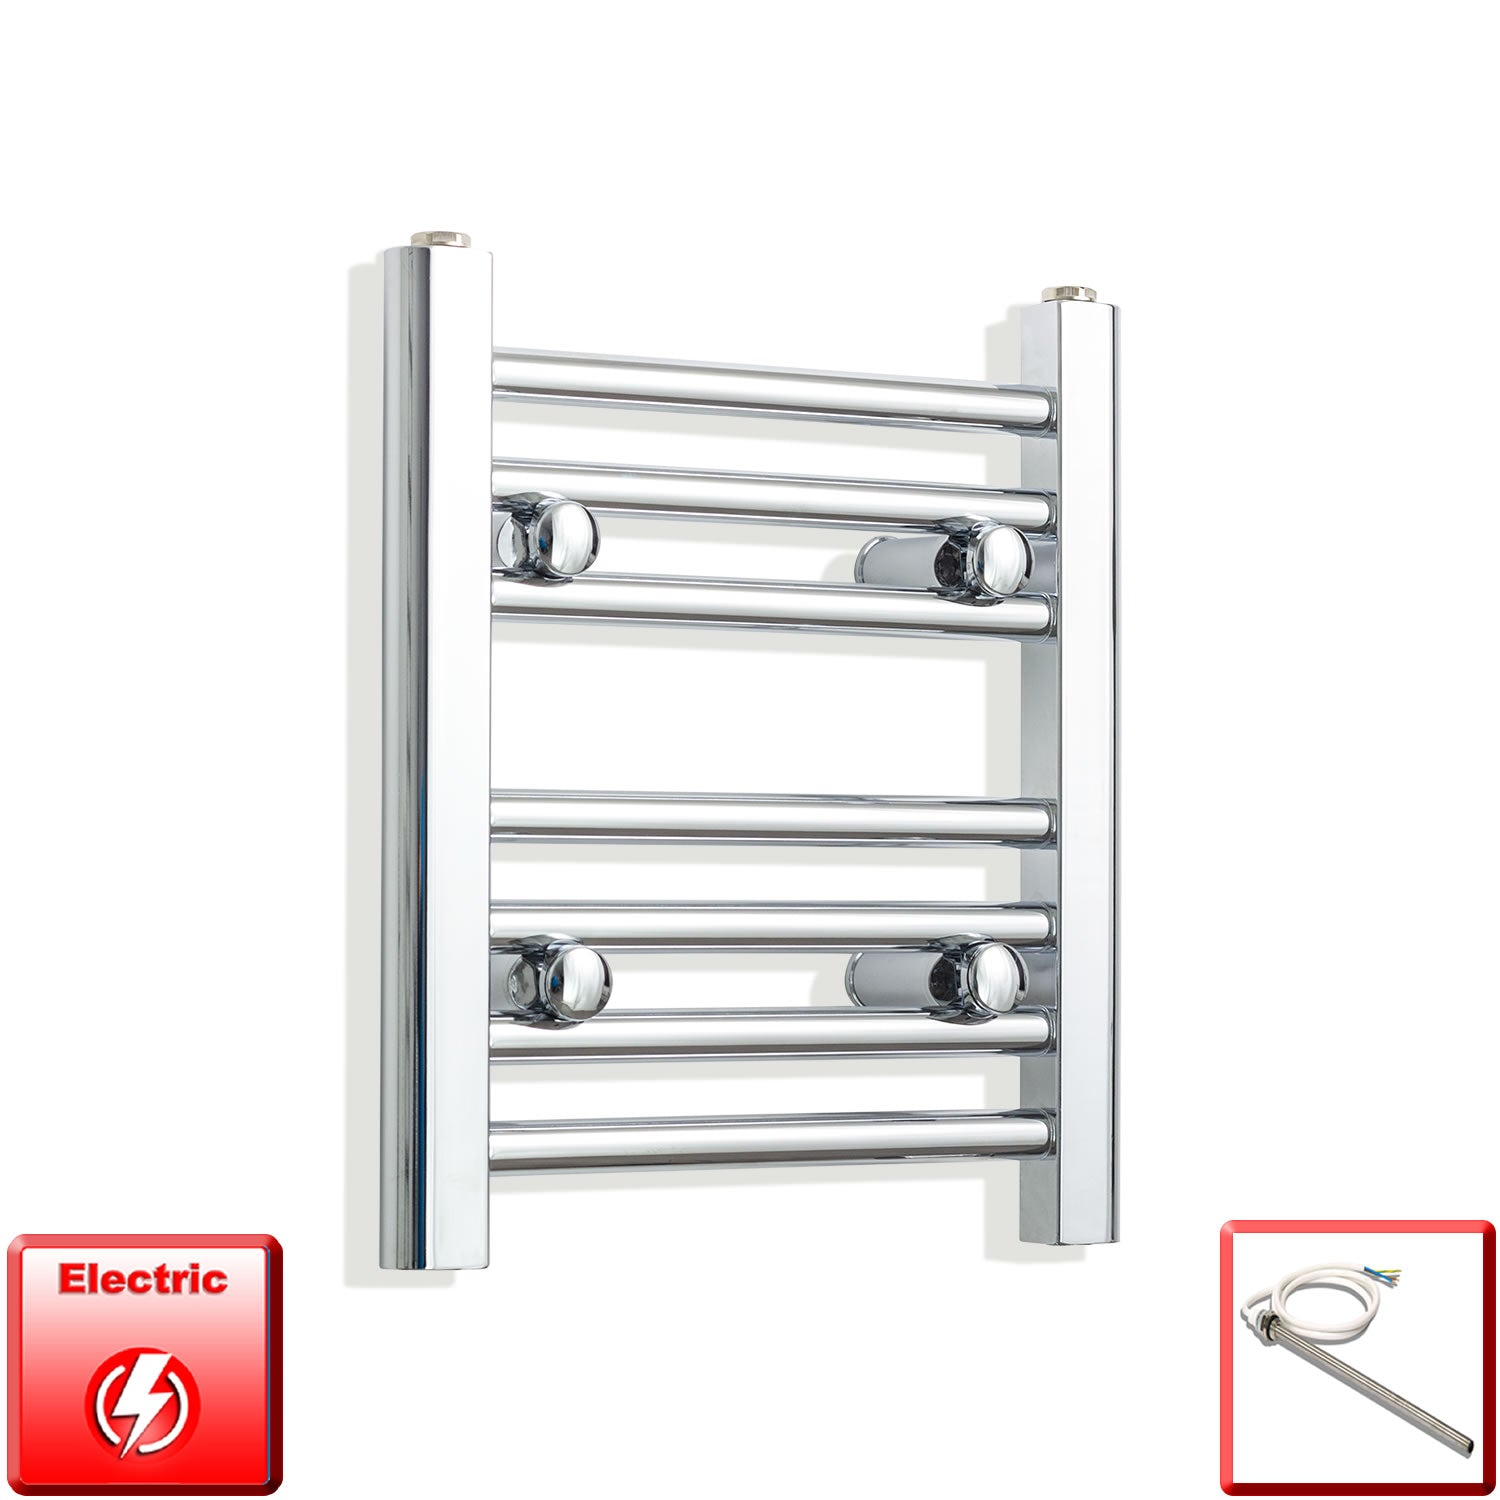 350mm Wide 400mm High Pre-Filled Chrome Electric Towel Rail Radiator With Single Heat Element